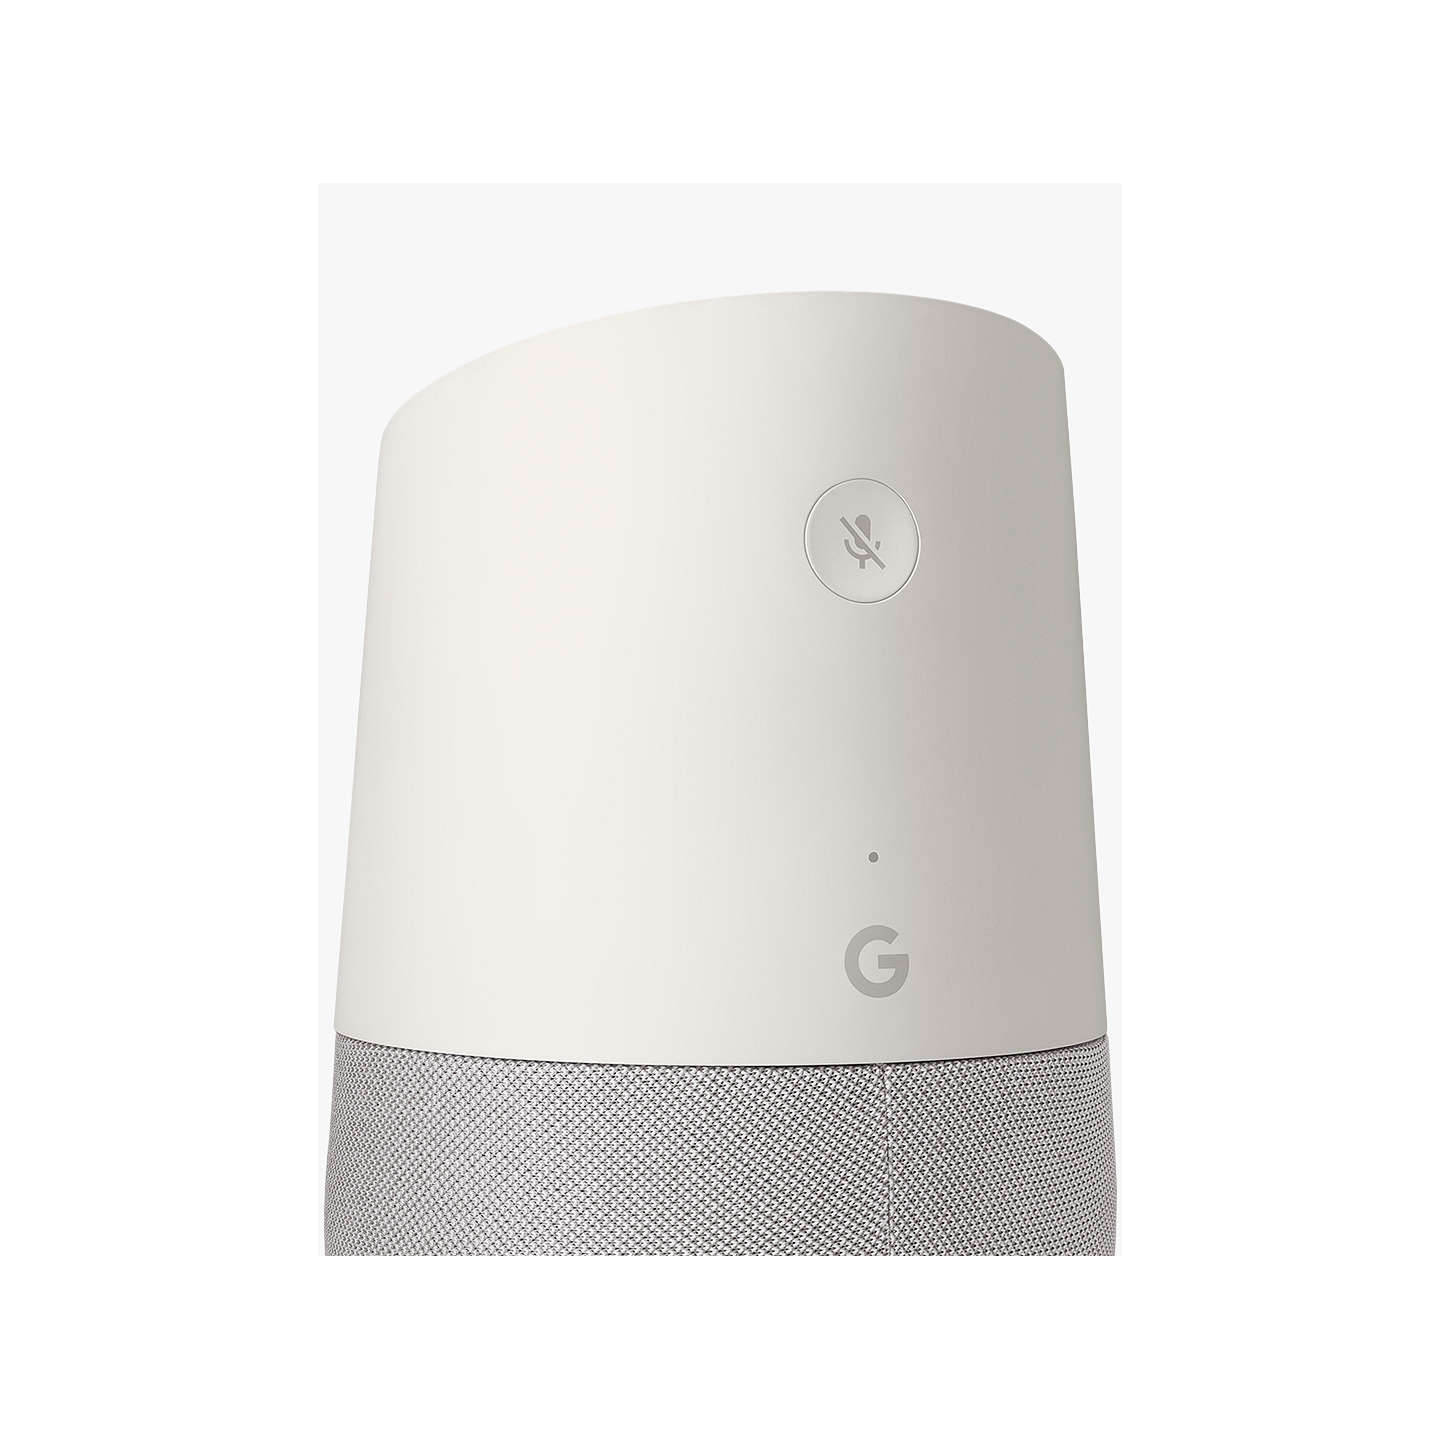 BuyGoogle Home Hands-Free Smart Speaker Online at johnlewis.com